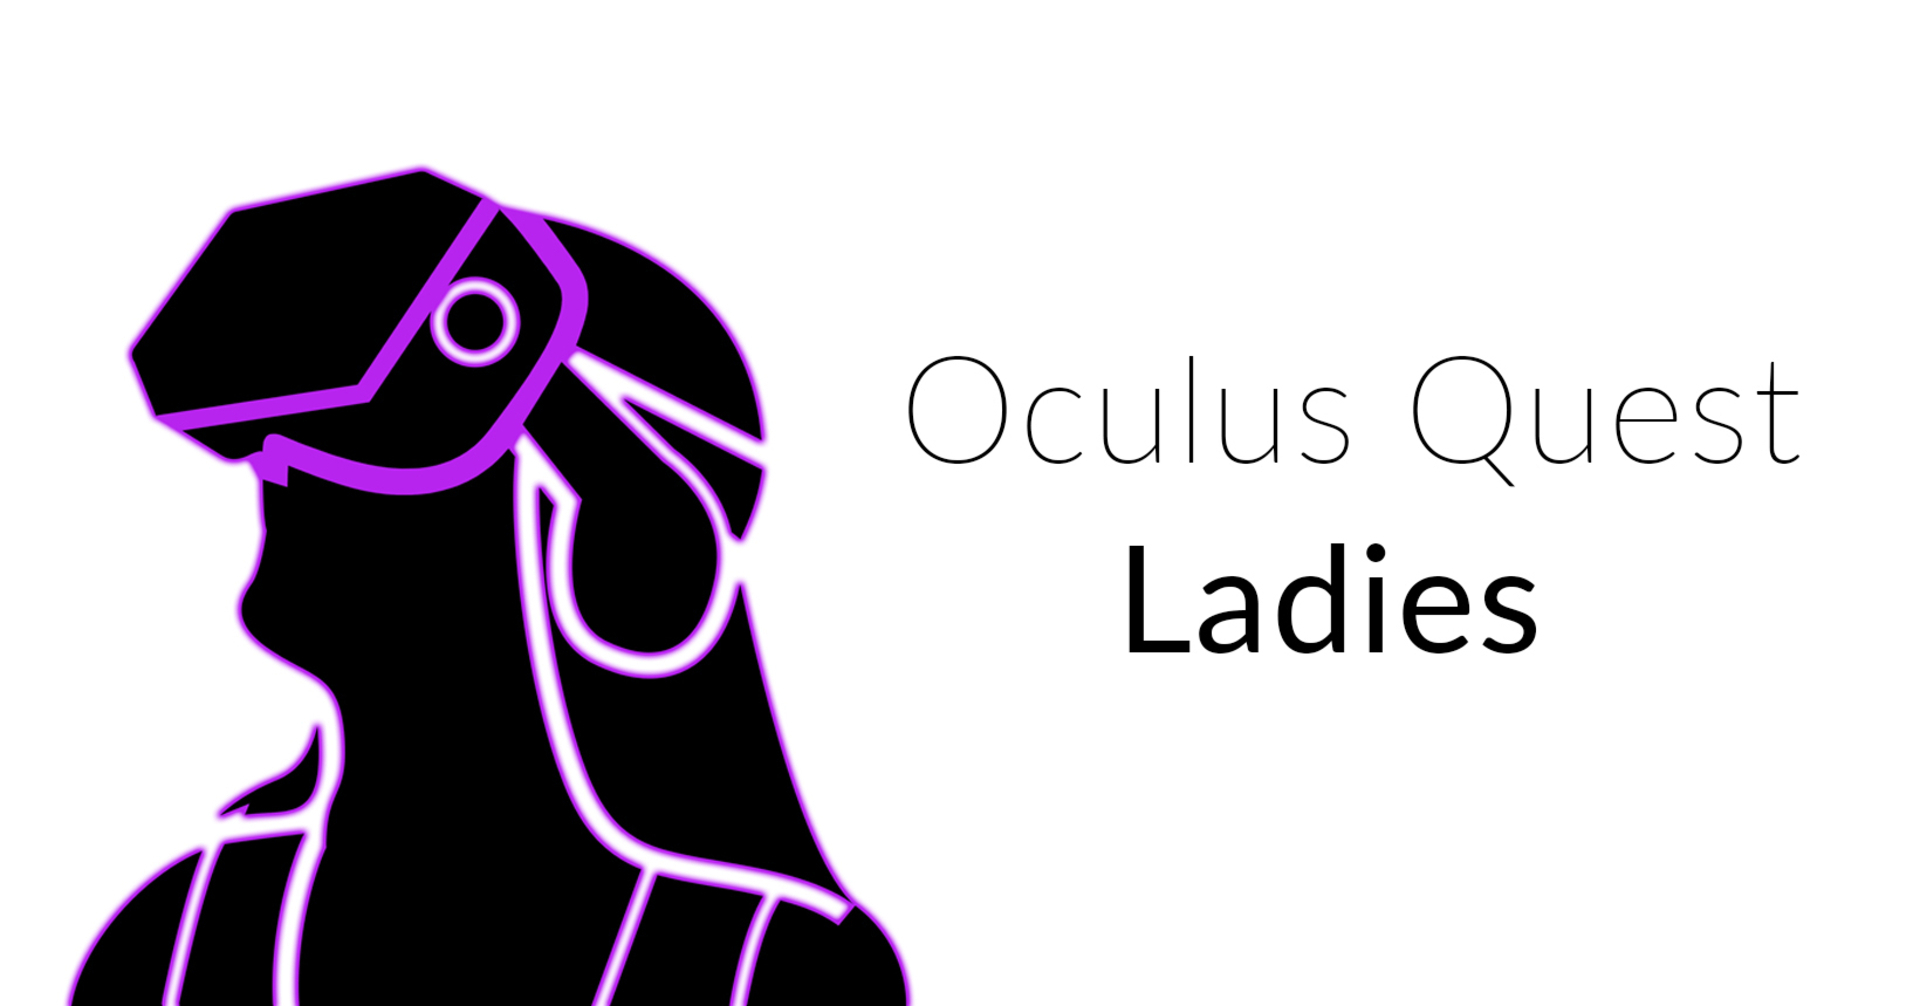 Oculas quest ladies